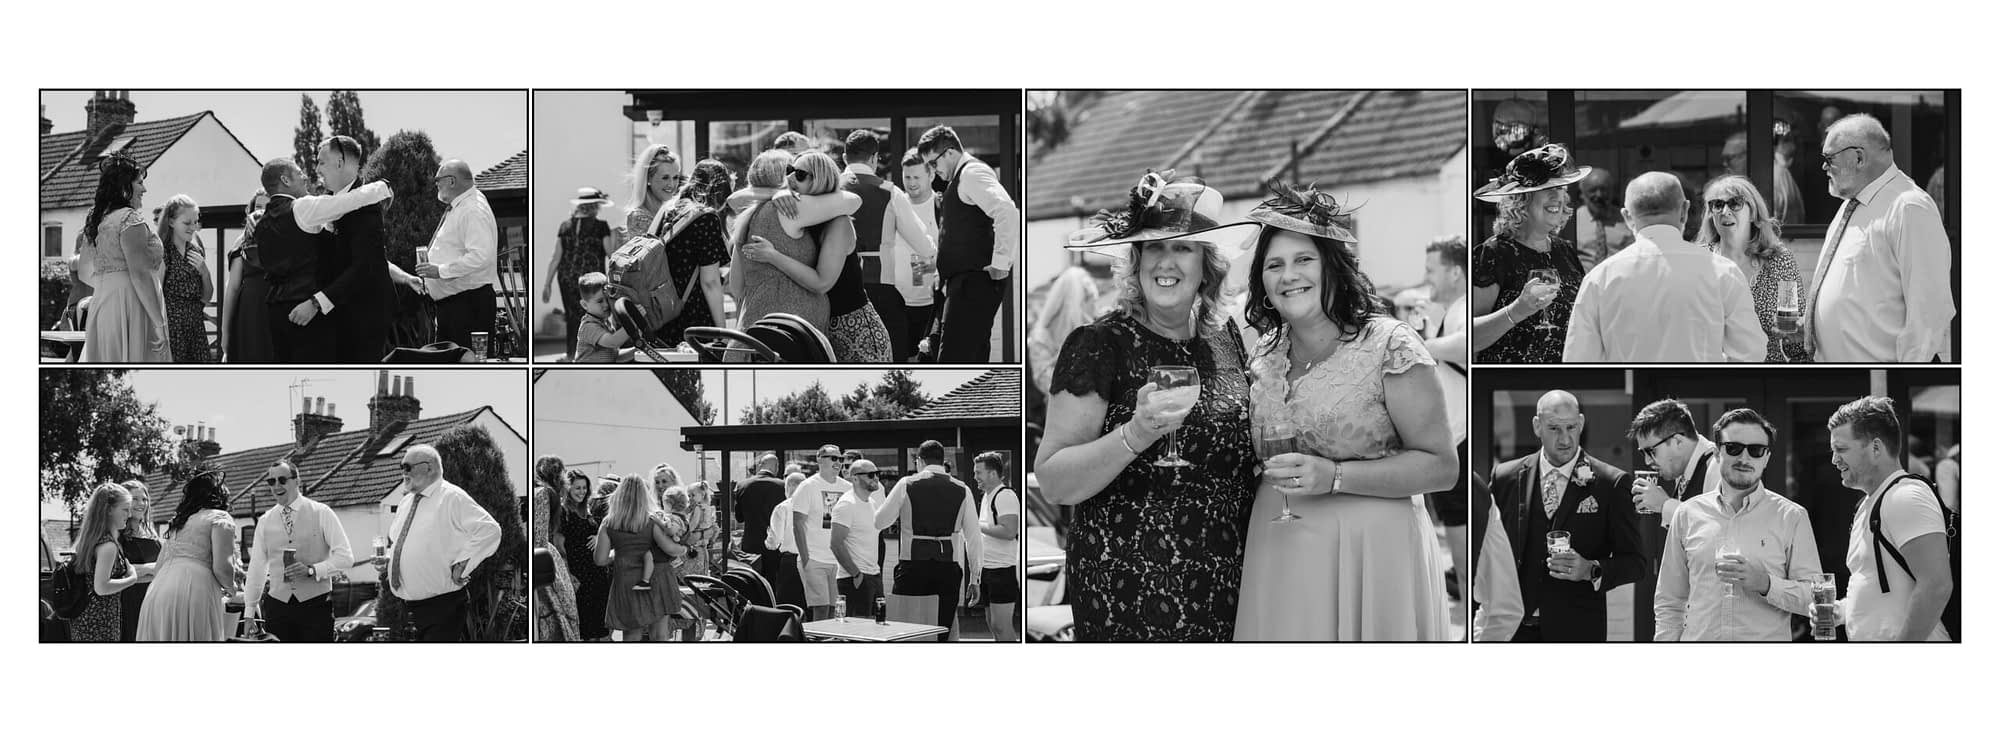 collection of photographs showing people drinking